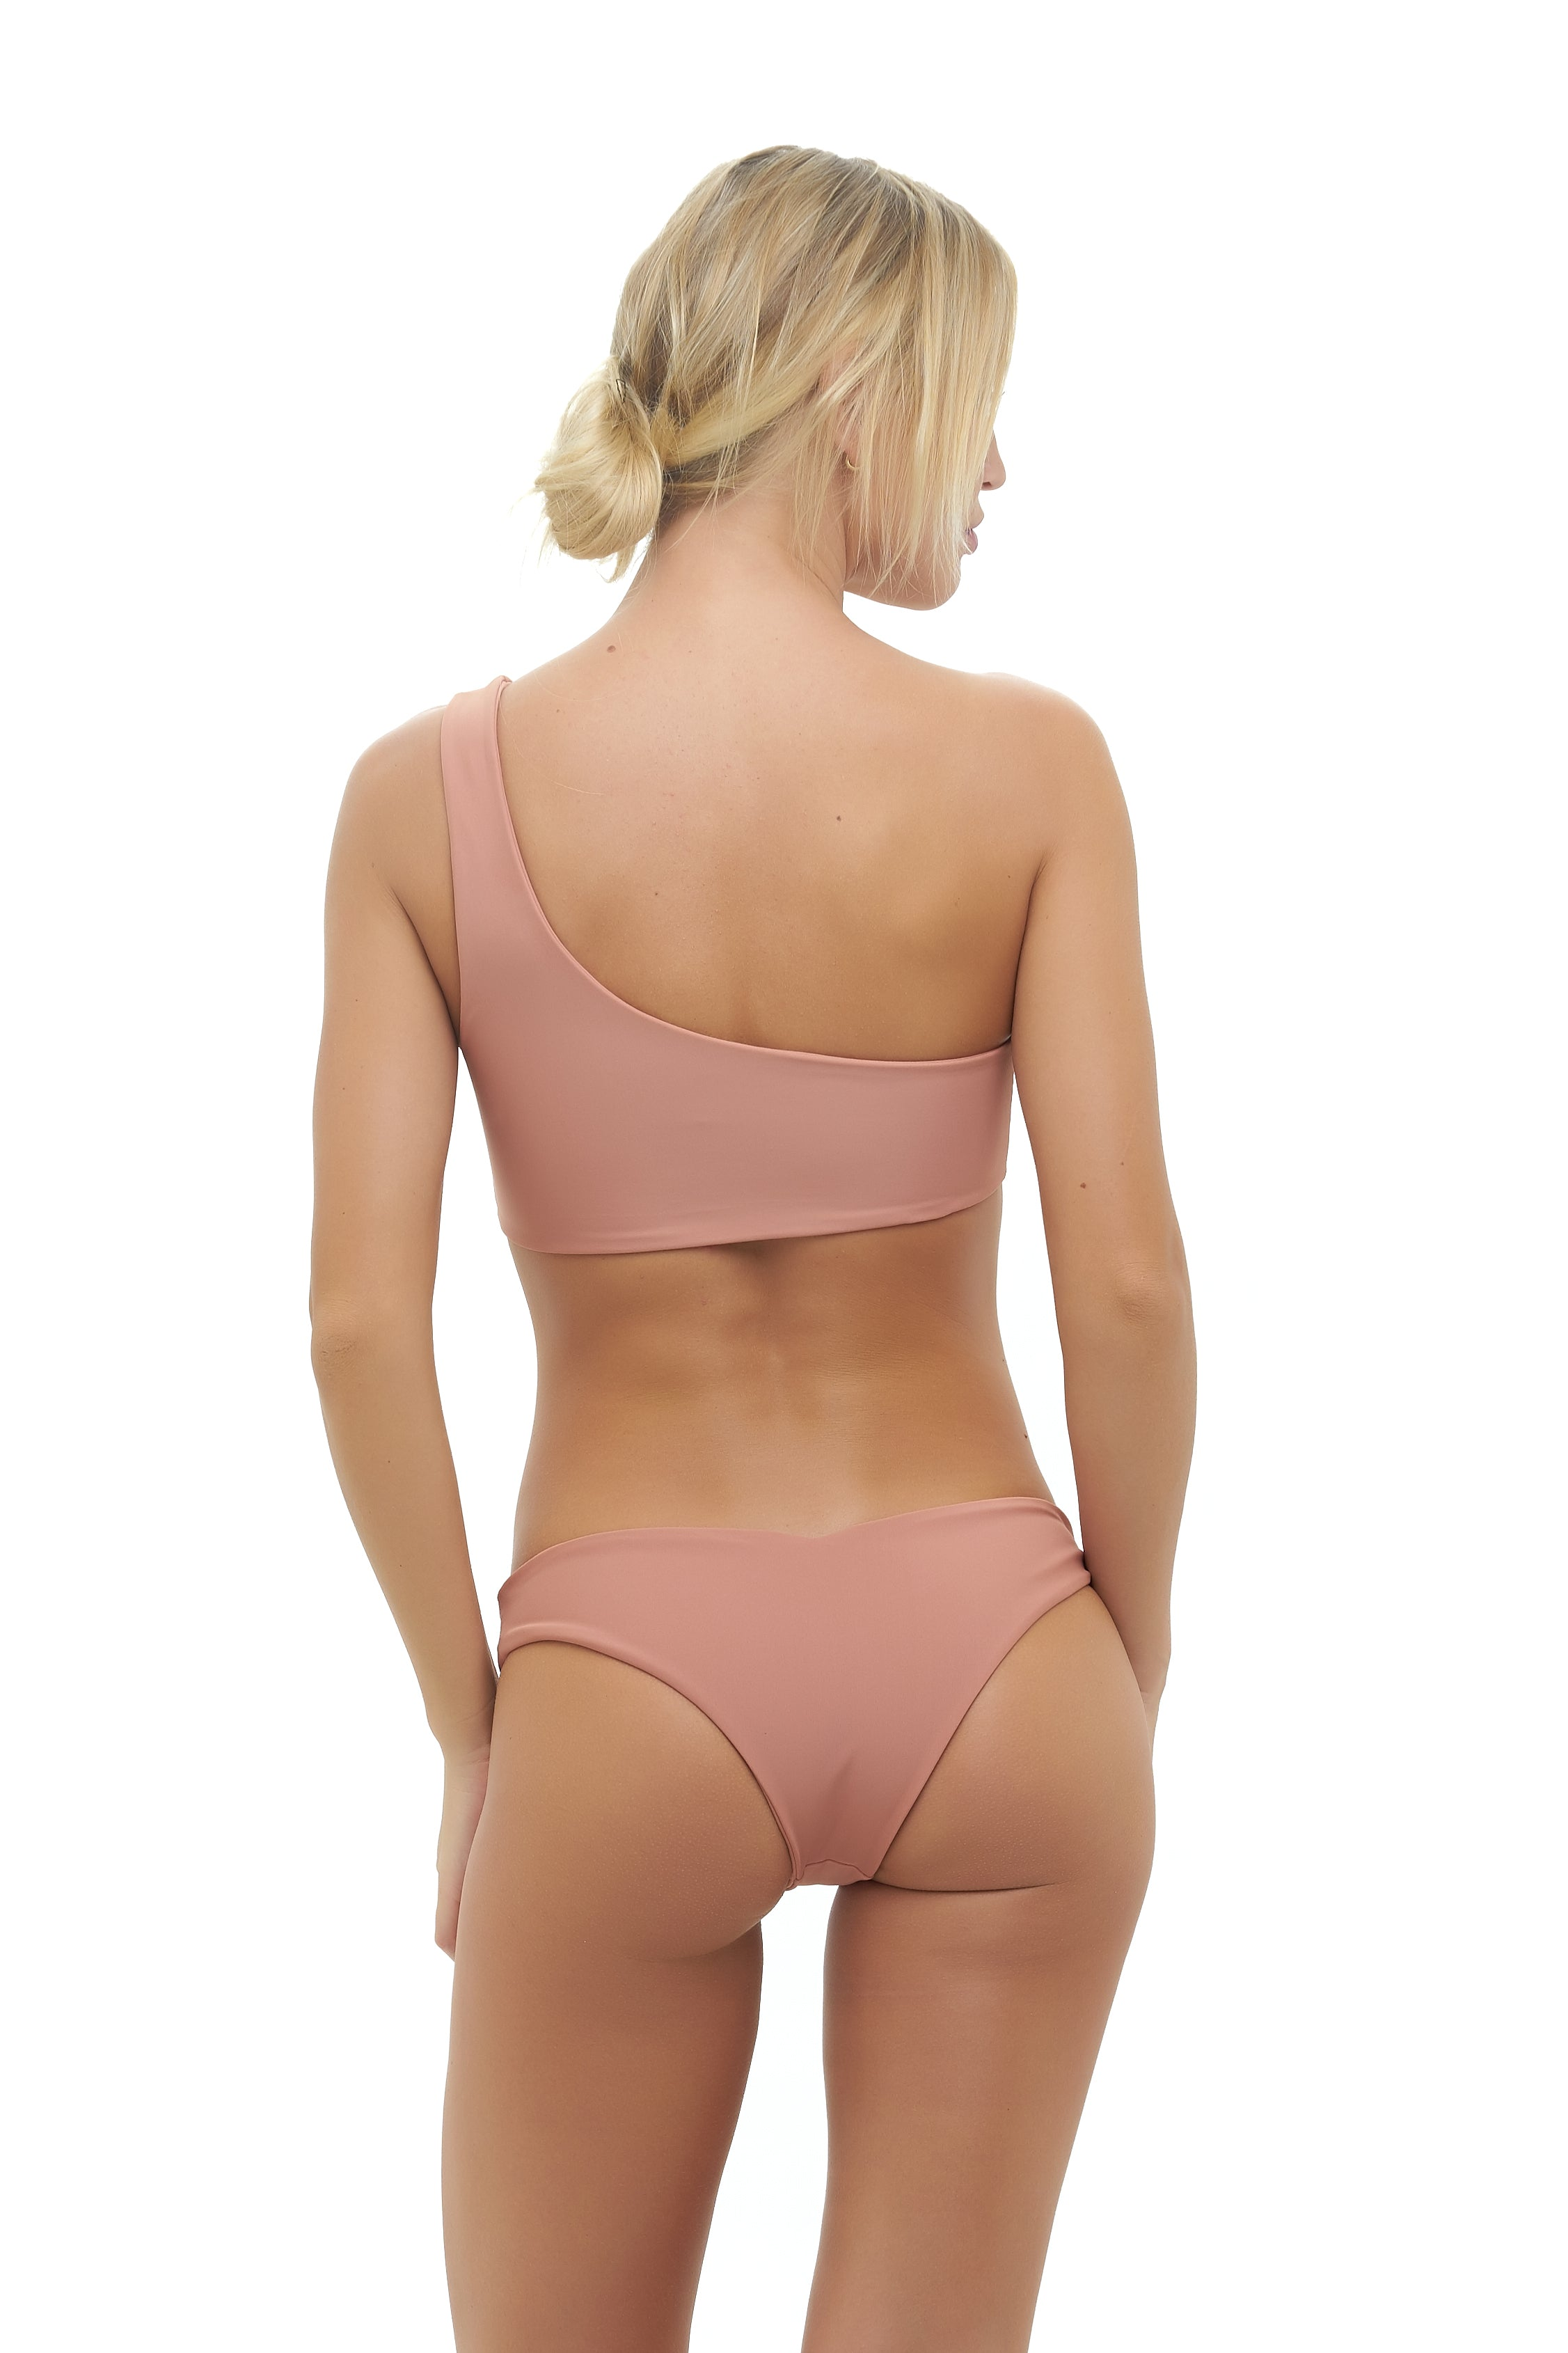 Storm Swimwear - Riviera - V Bikini Bottom in Sun Kissed